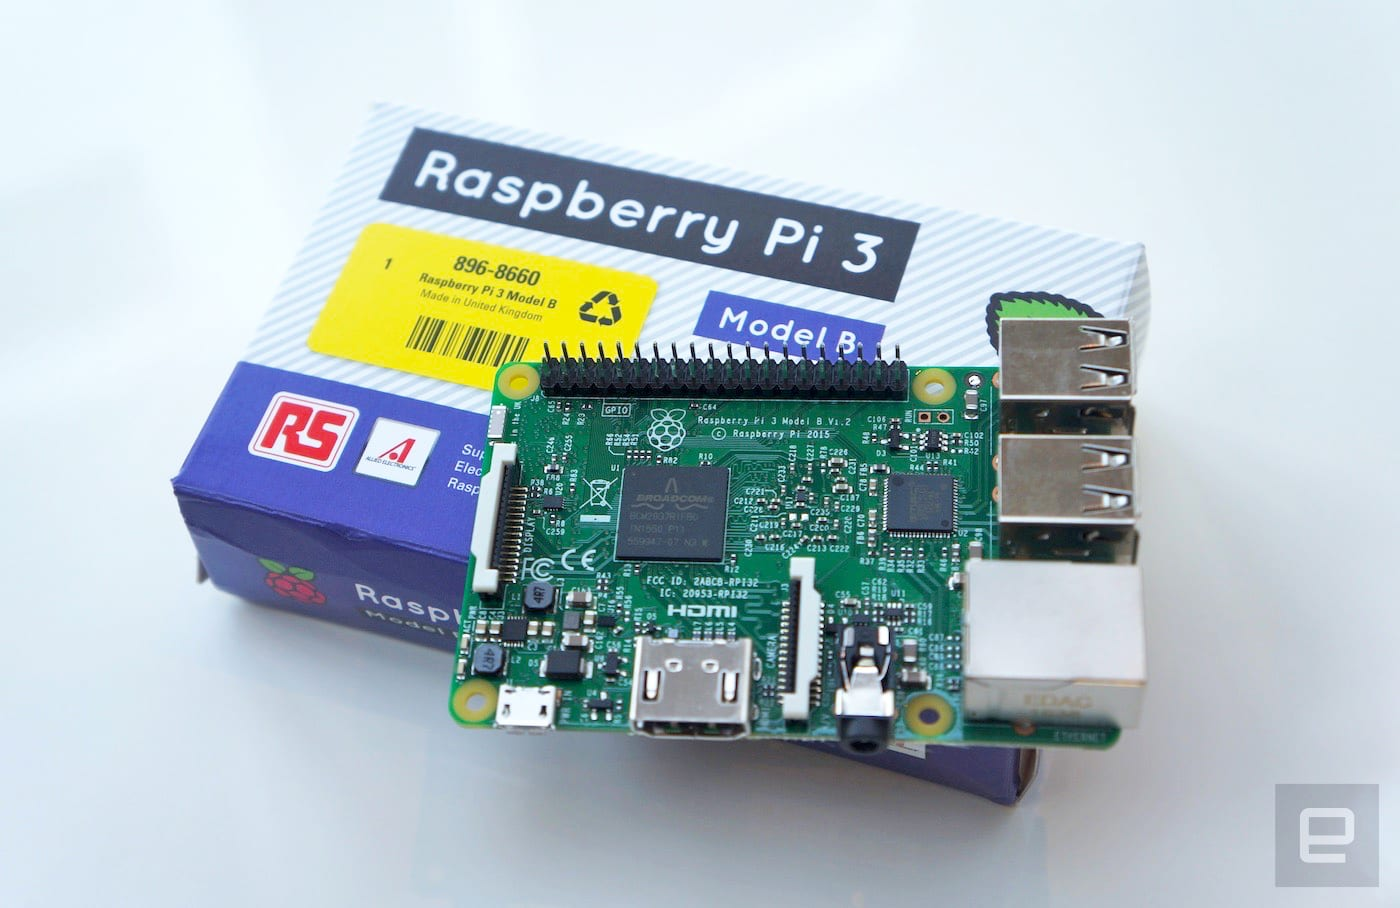 Raspberry Pi 3 Has A 64 Bit Processor And Built In Wifi Wireless Mobile Battery Charger Circuit Engineers Gallery